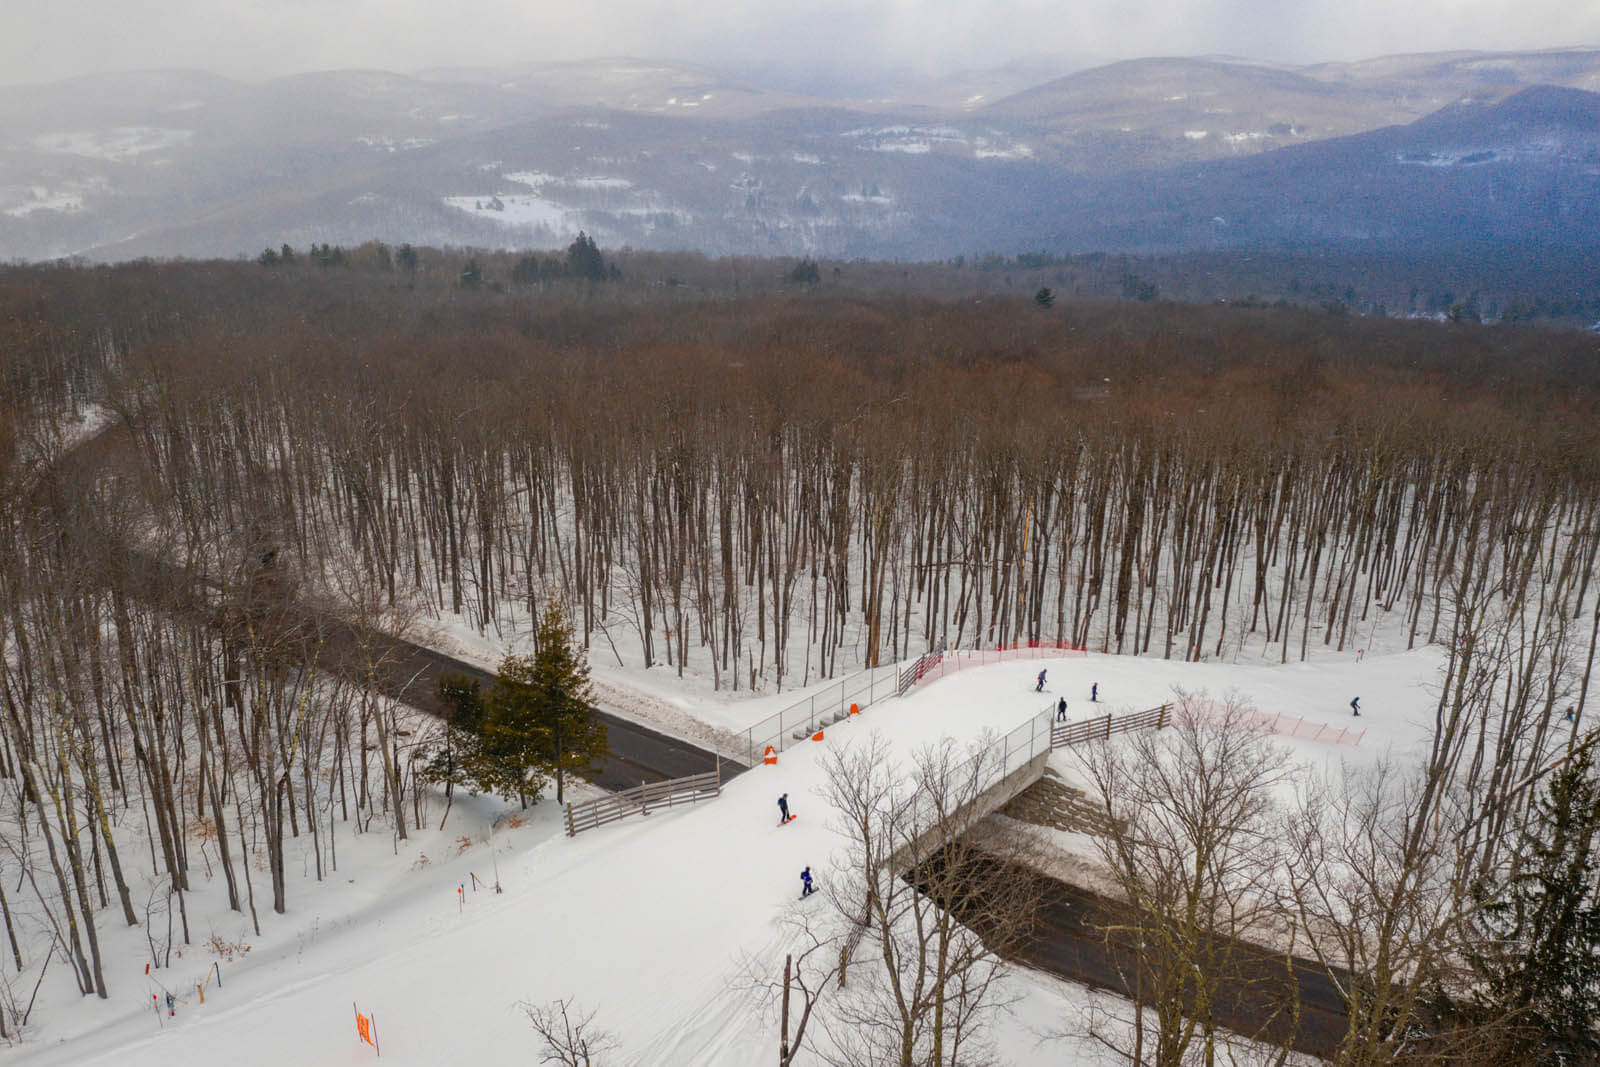 Aerial view of skiiers at Bellayre Ski Resort in the Catskills in the winter in New York